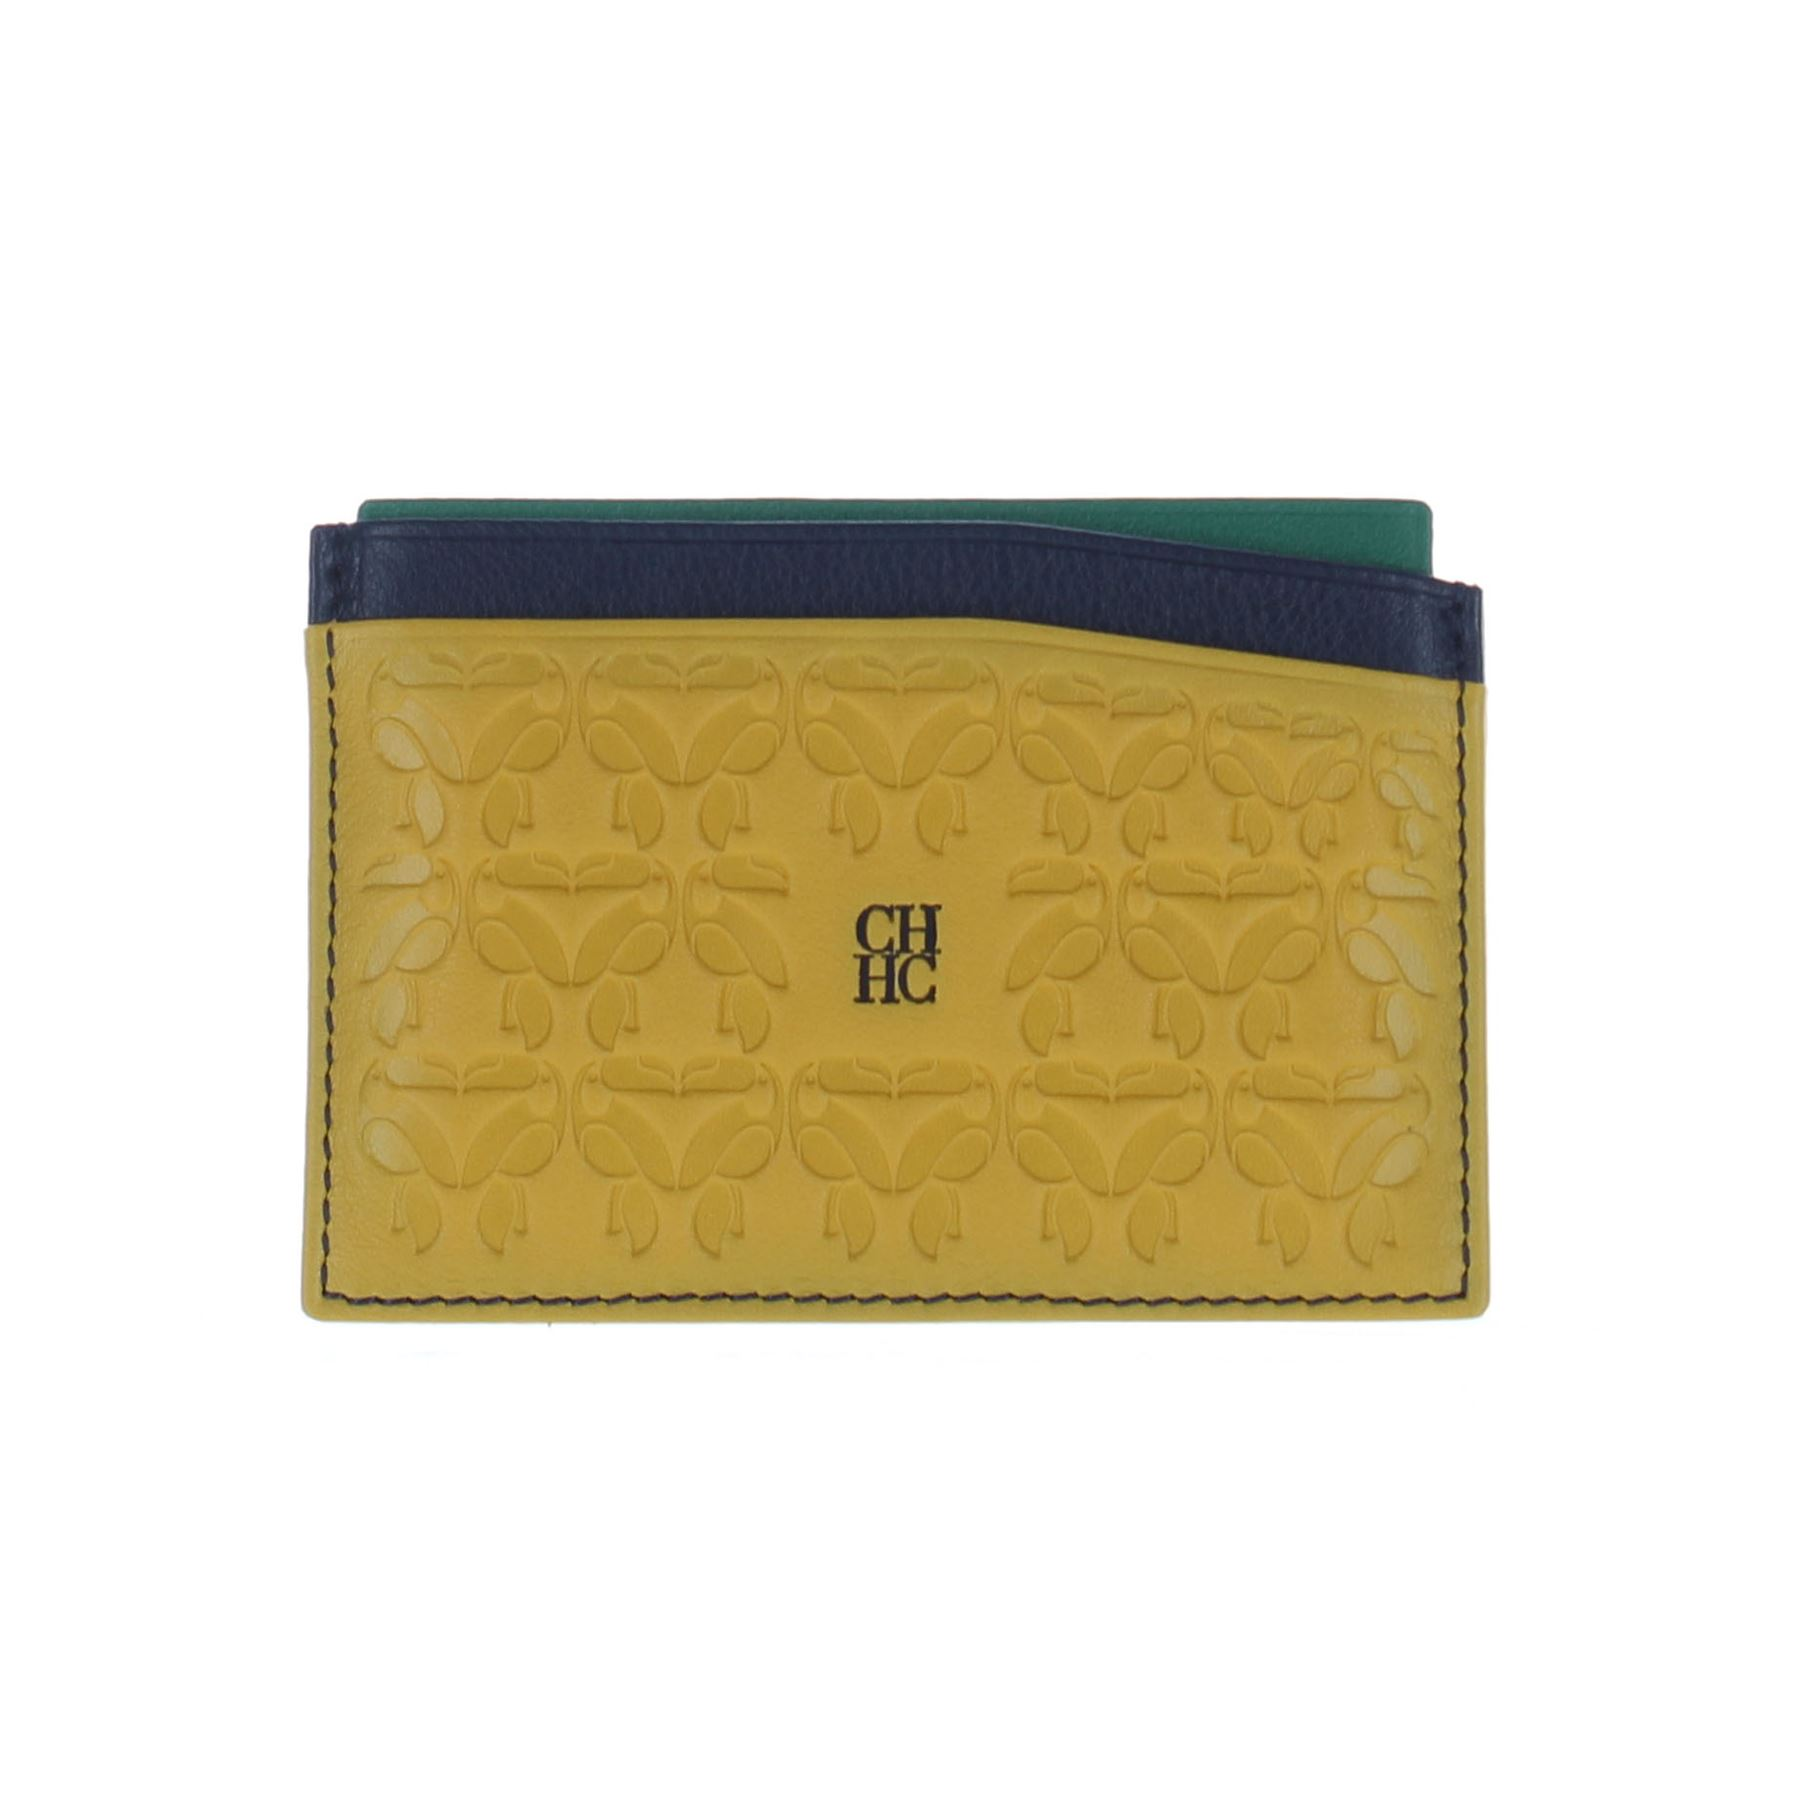 804363ca8 CAROLINA HERRERA Multicolor Cartera de cuero / monedero , 3